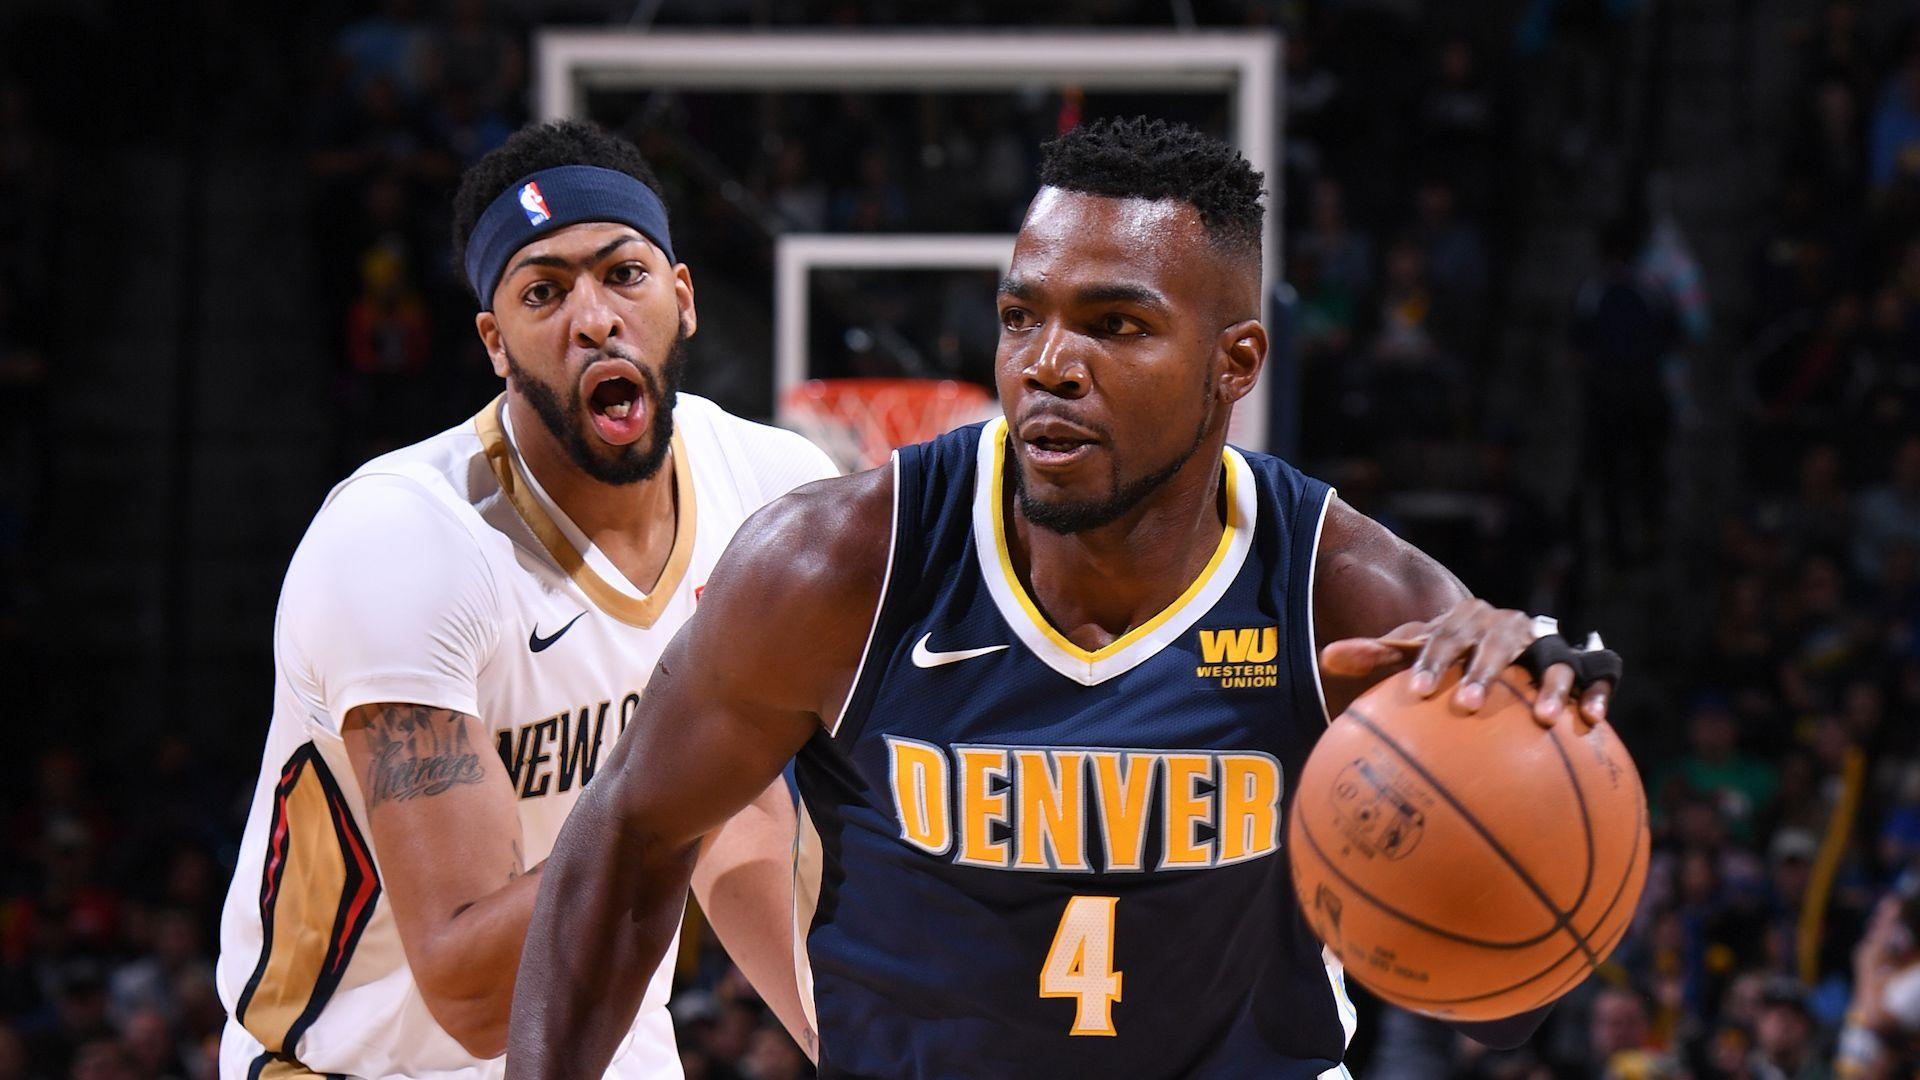 The Starters: Nuggets a Playoff Lock With Paul Millsap?